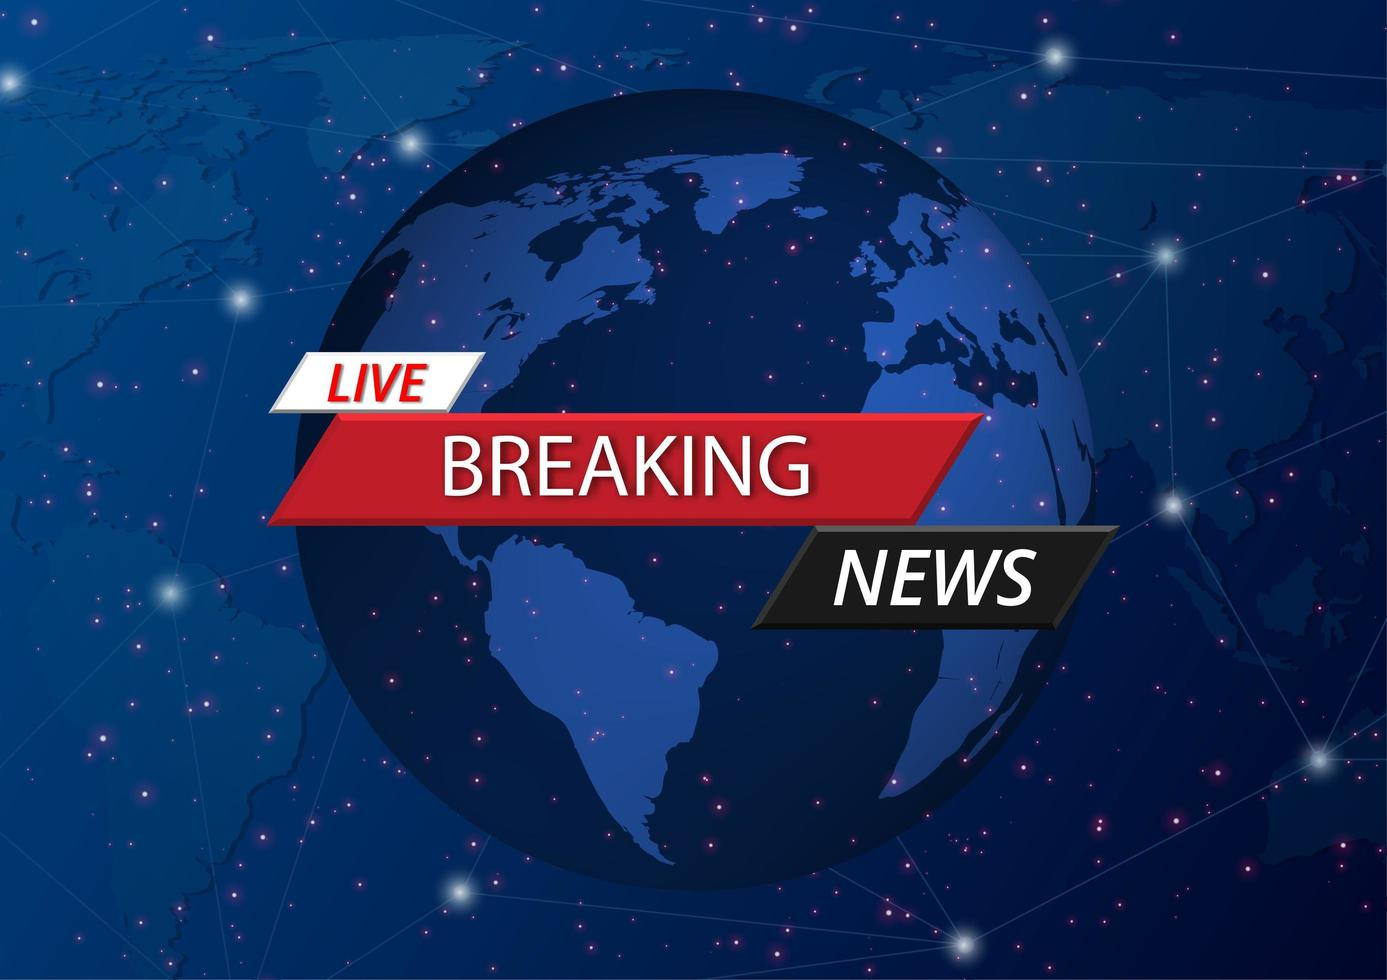 Live breaking news over world and space screen saver vector